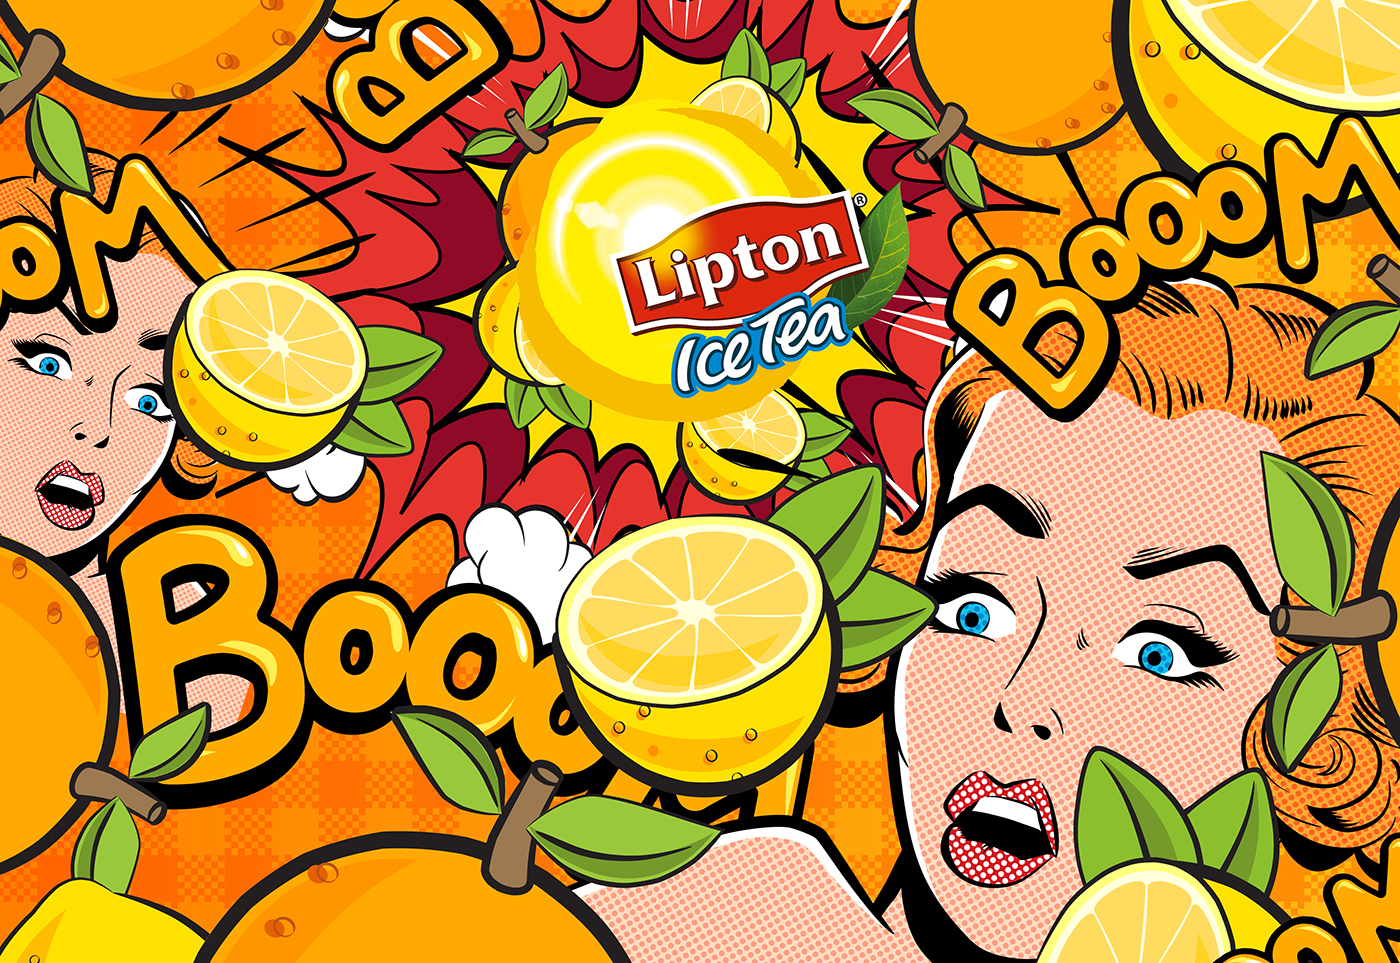 Lipton Fruit Punch Sylvain Botter